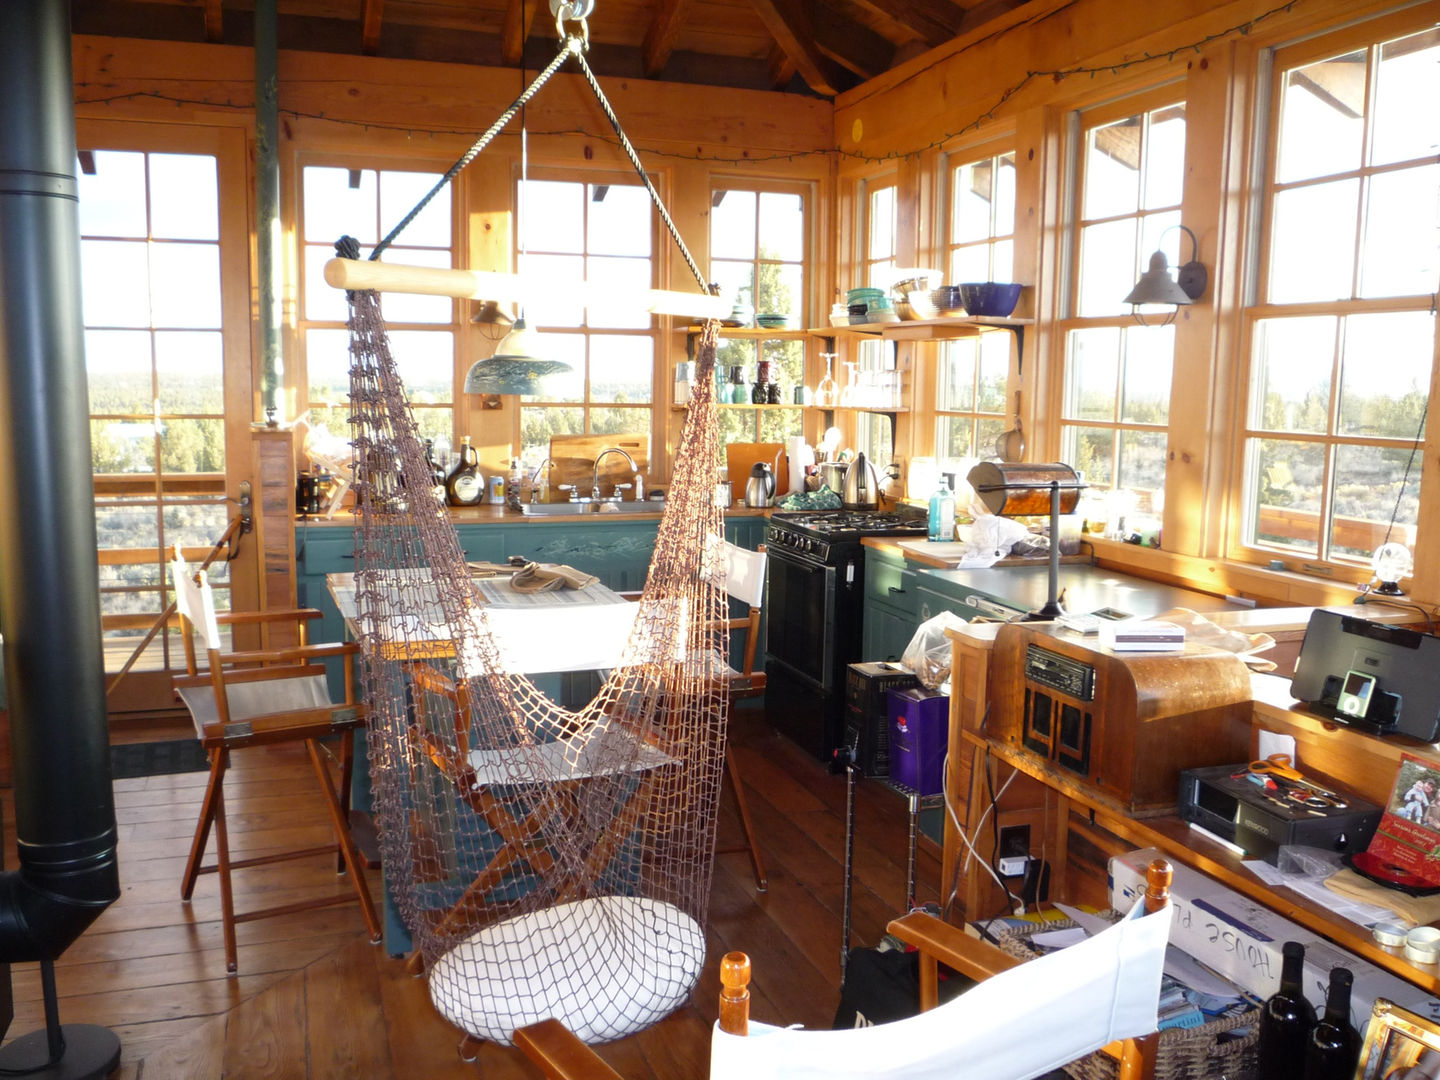 1930s Era Forest Fire Lookout Towers Inspired This 3 Storey Tower House In  Oregonu0027s